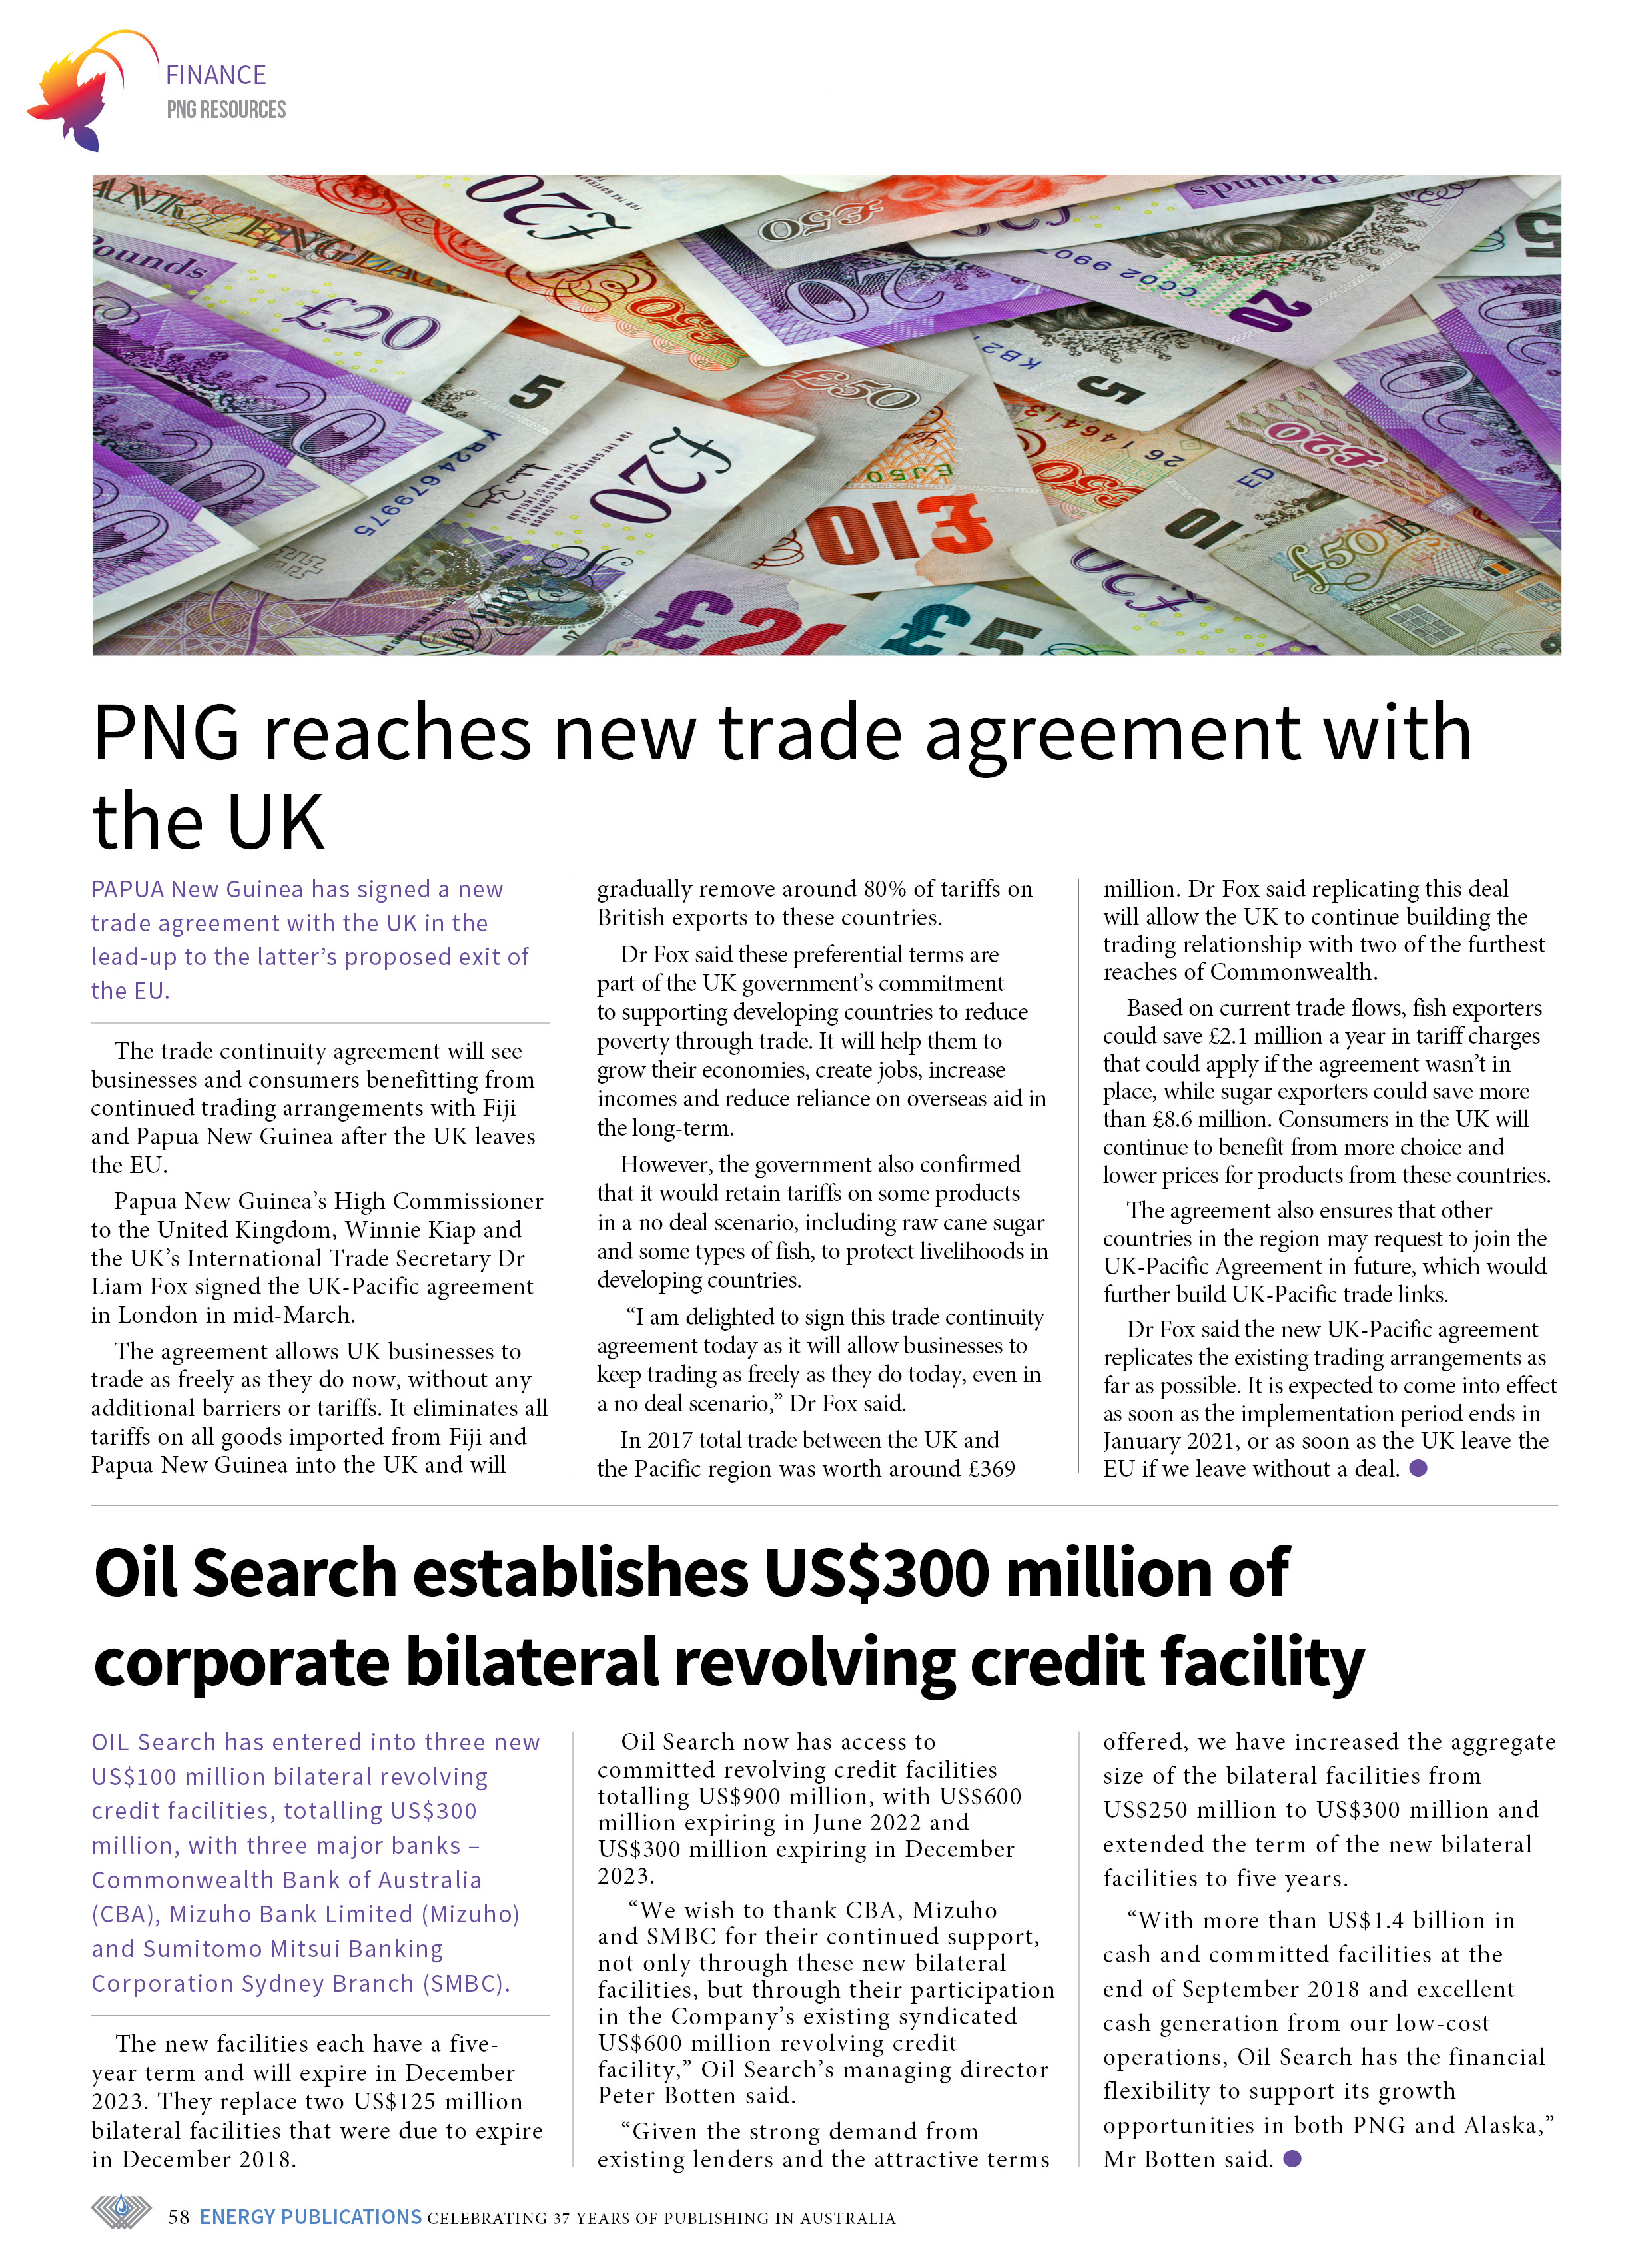 PNG Resources Q1 2019 – Page 60